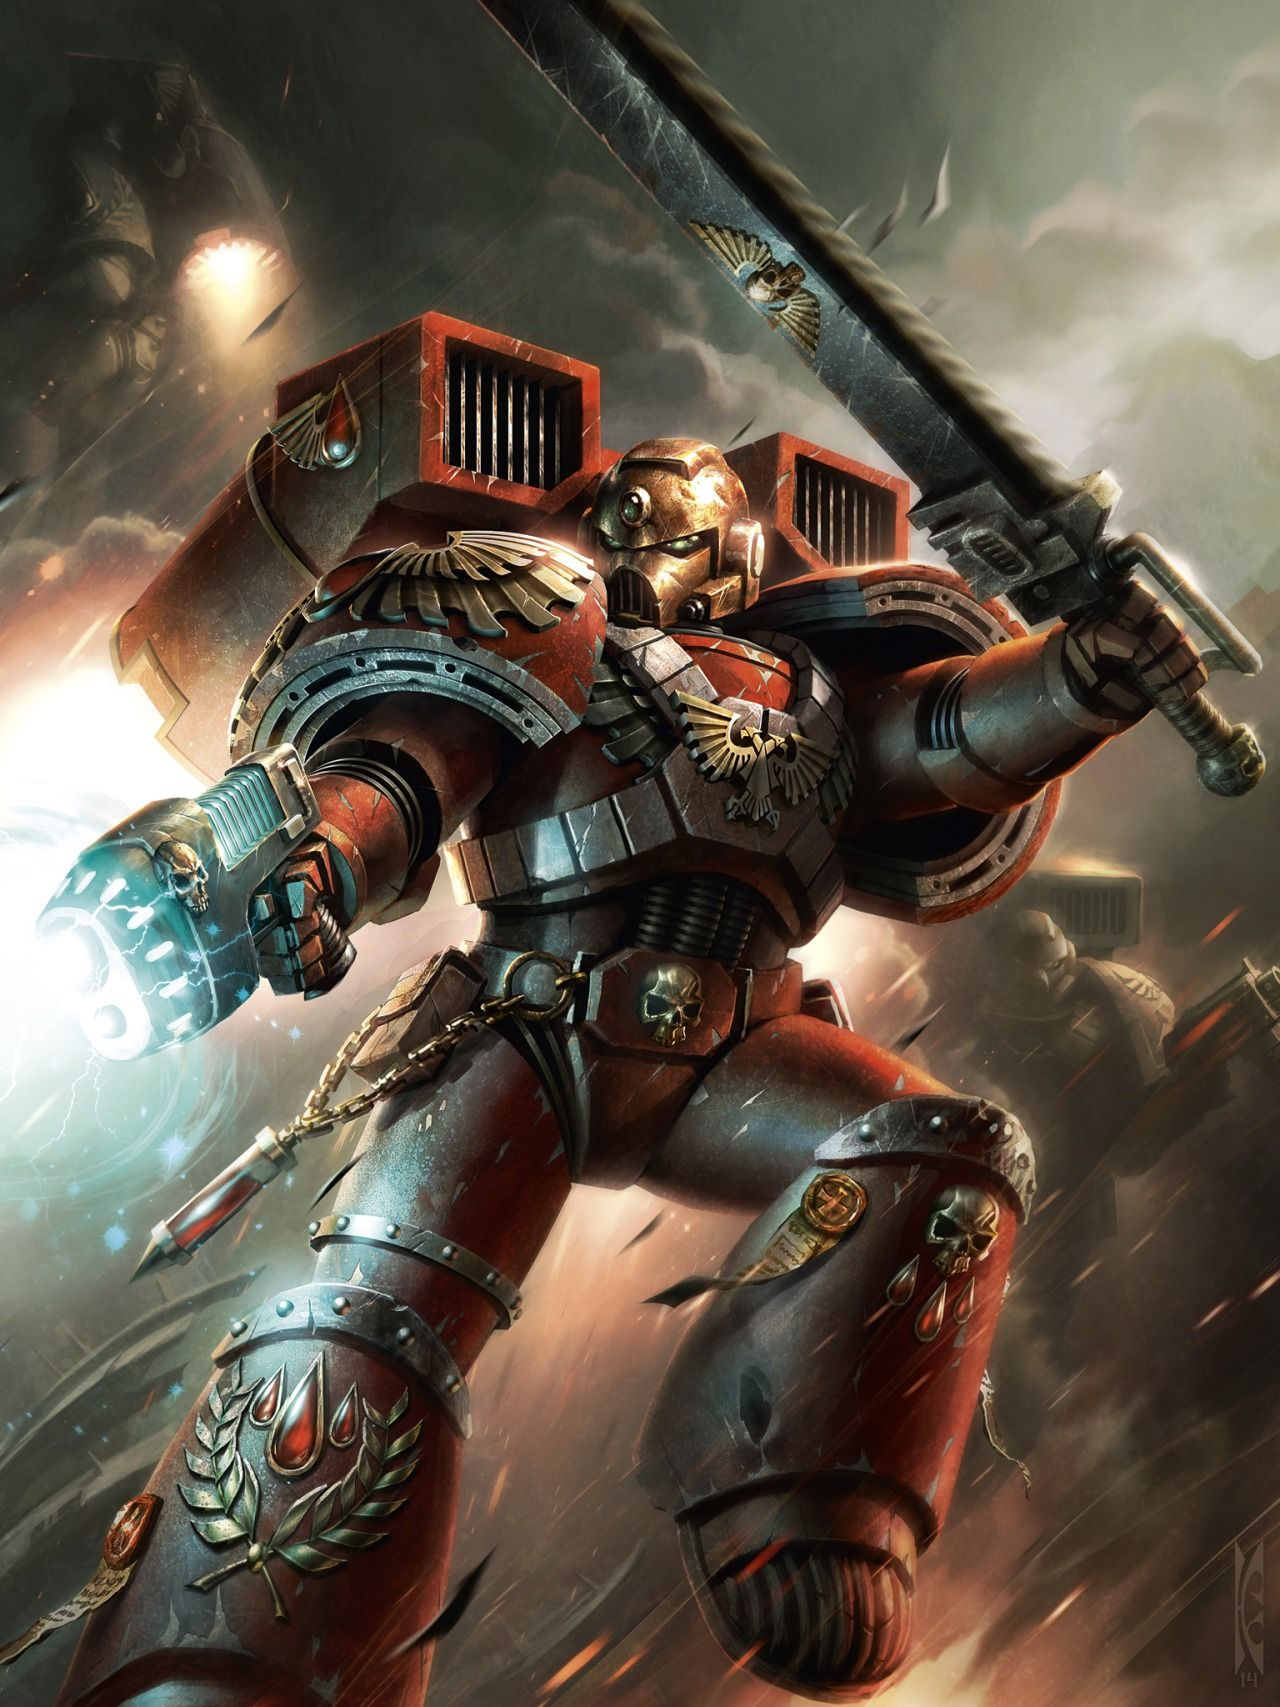 Art Of 40k Last One Of The Year Why Yes I Am A Staunch Imperial And Yes I Did Buy The Imperial Codex Wallpap Warhammer 40k Warhammer Warhammer 40k Artwork